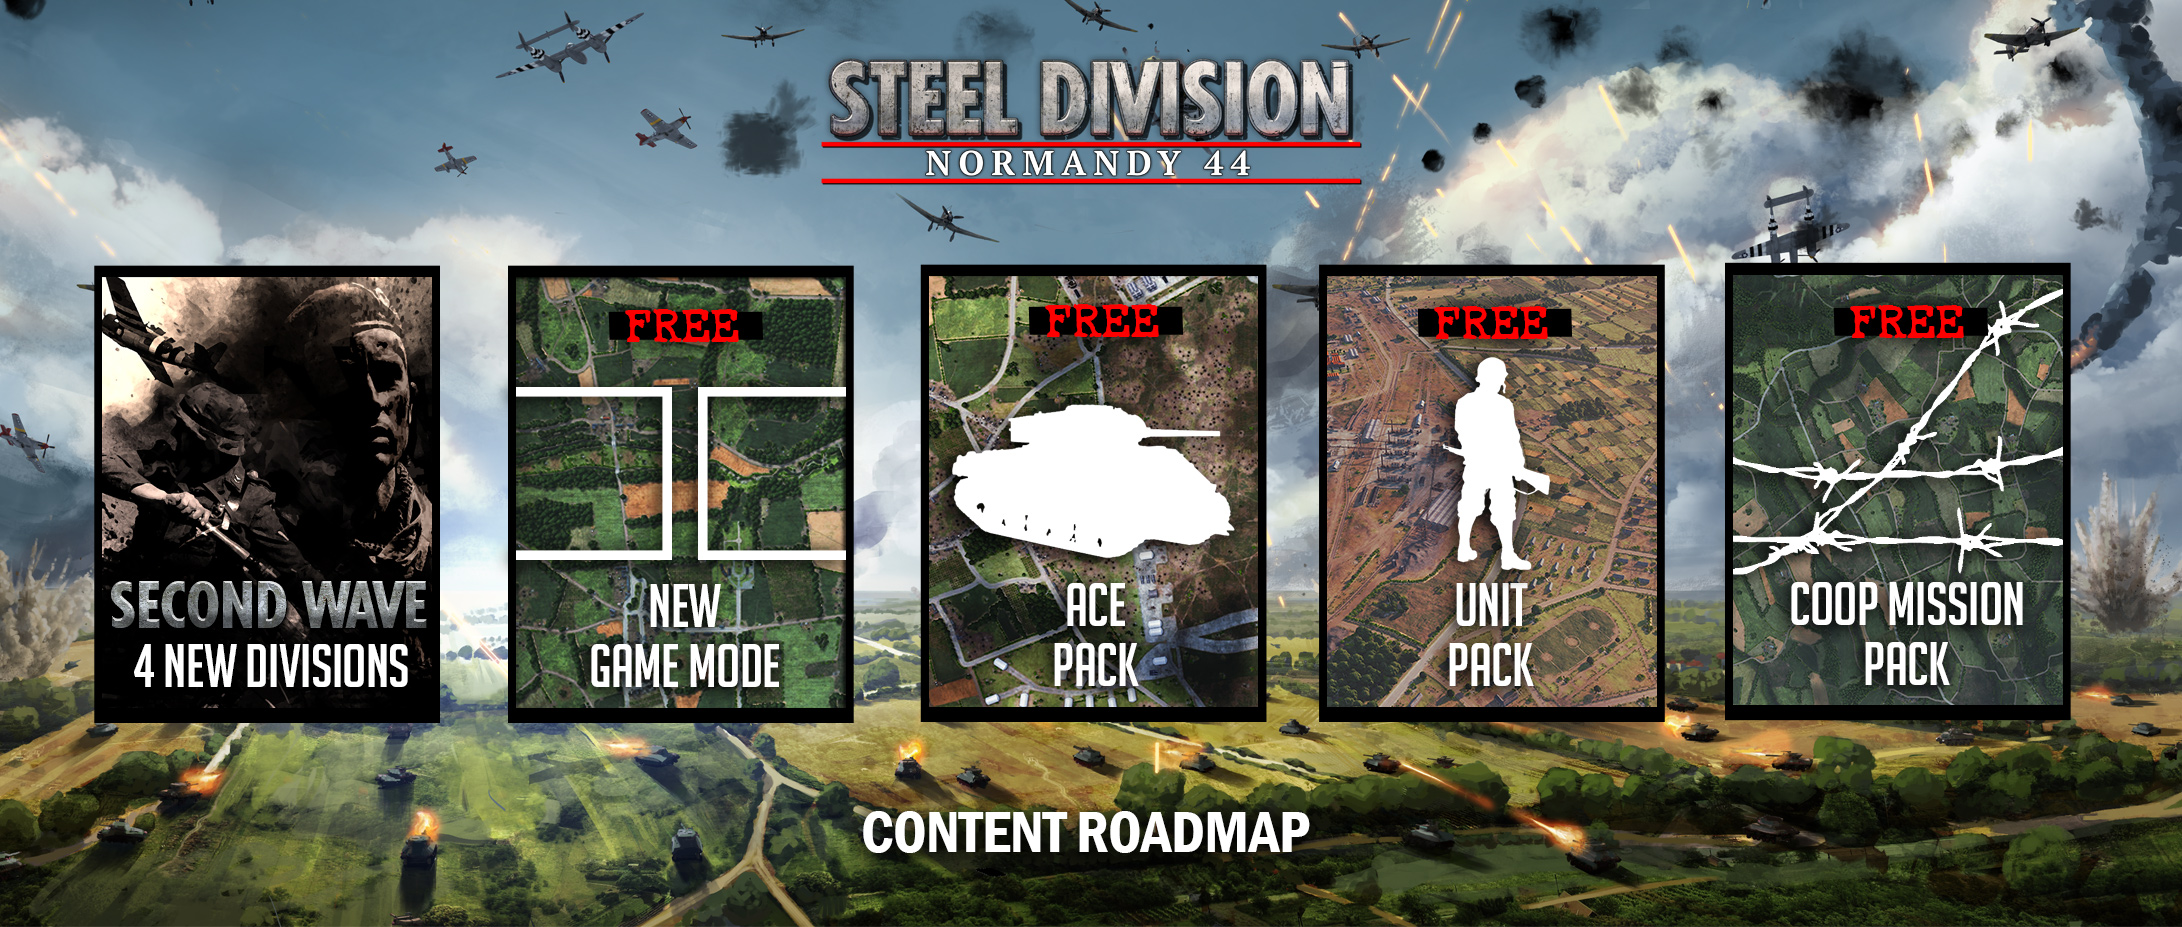 Steel Division Normandy 44 PC Back To Hell DLC ... - photo#36